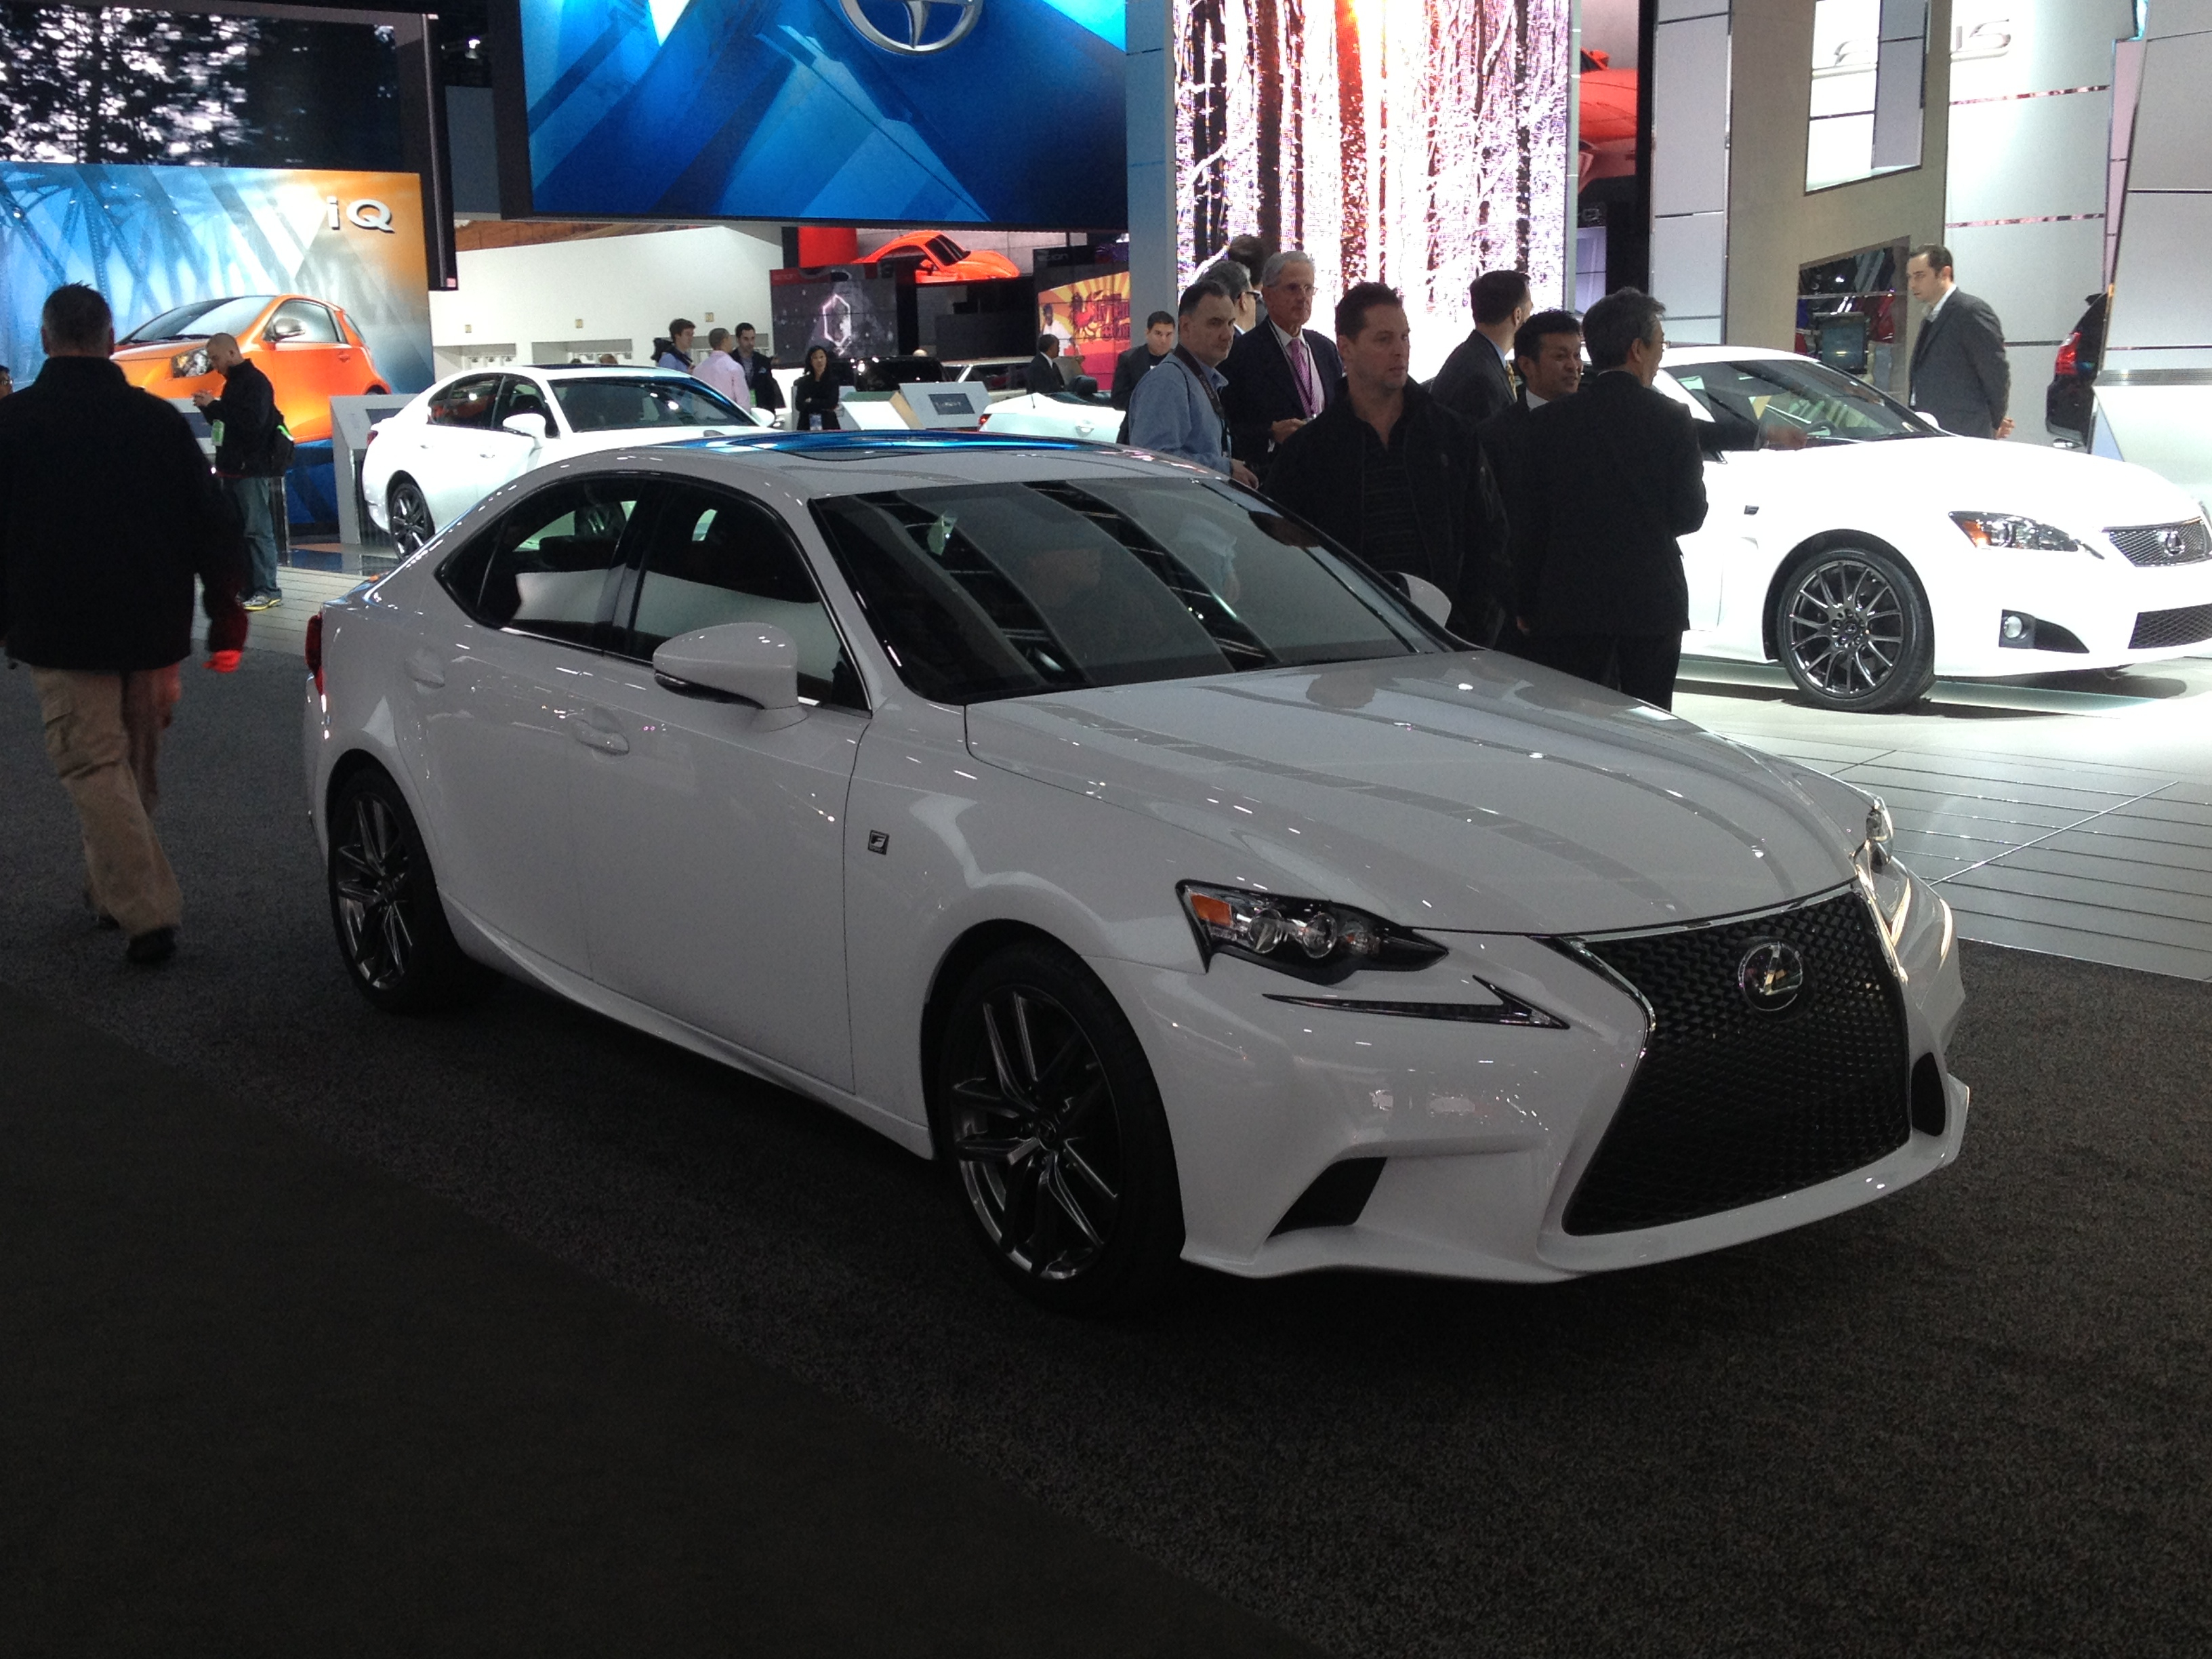 file 2014 lexus is350 f sport 8402956001 jpg wikimedia commons. Black Bedroom Furniture Sets. Home Design Ideas